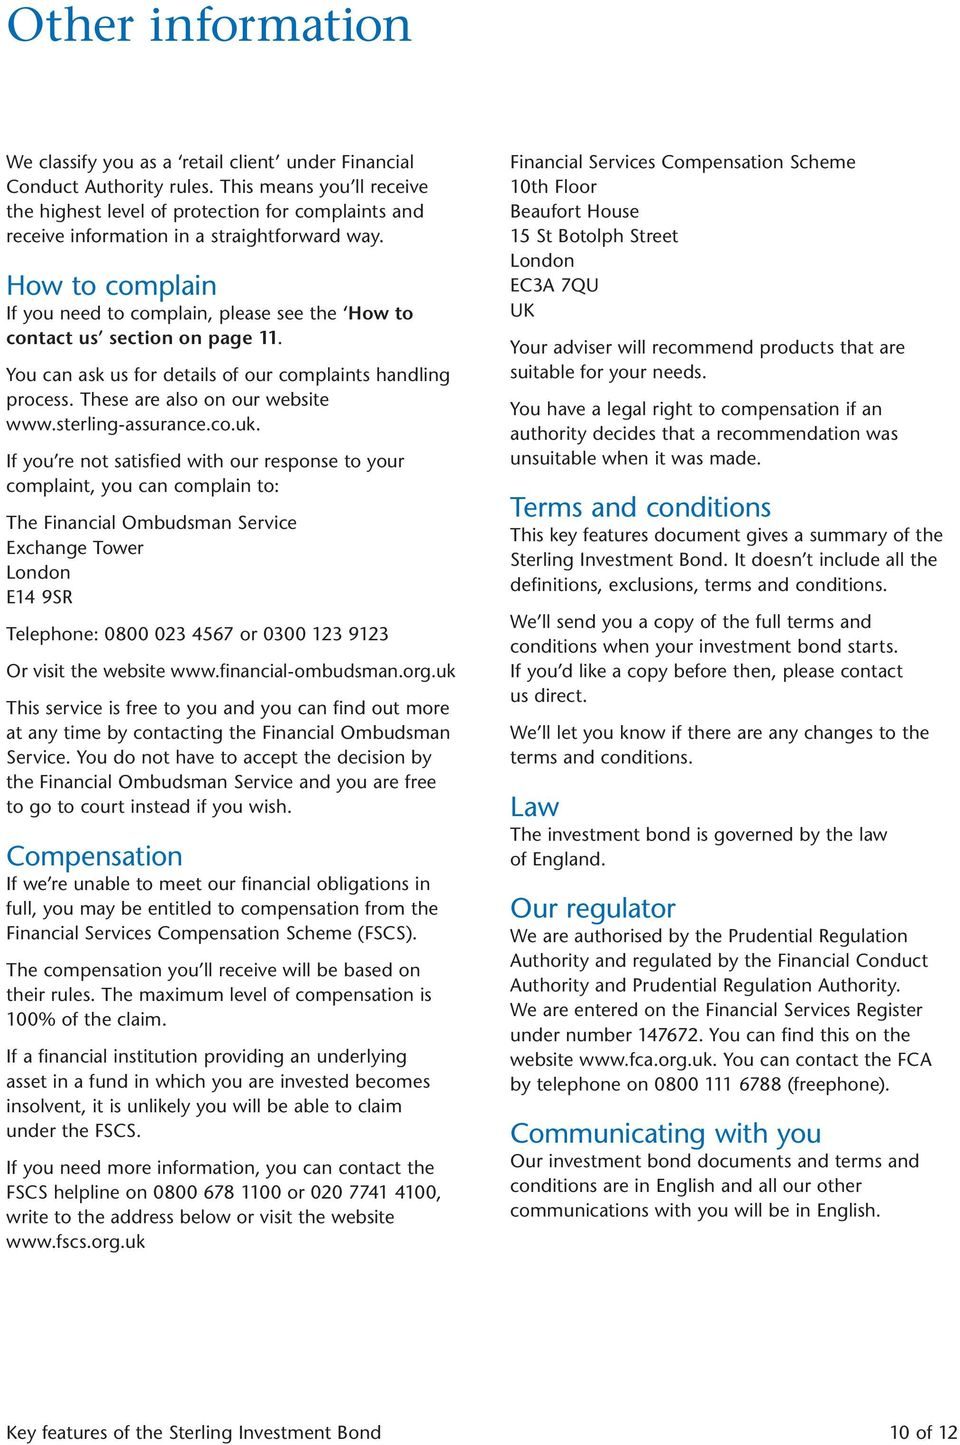 How to complain If you need to complain, please see the How to contact us section on page 11. You can ask us for details of our complaints handling process. These are also on our website www.